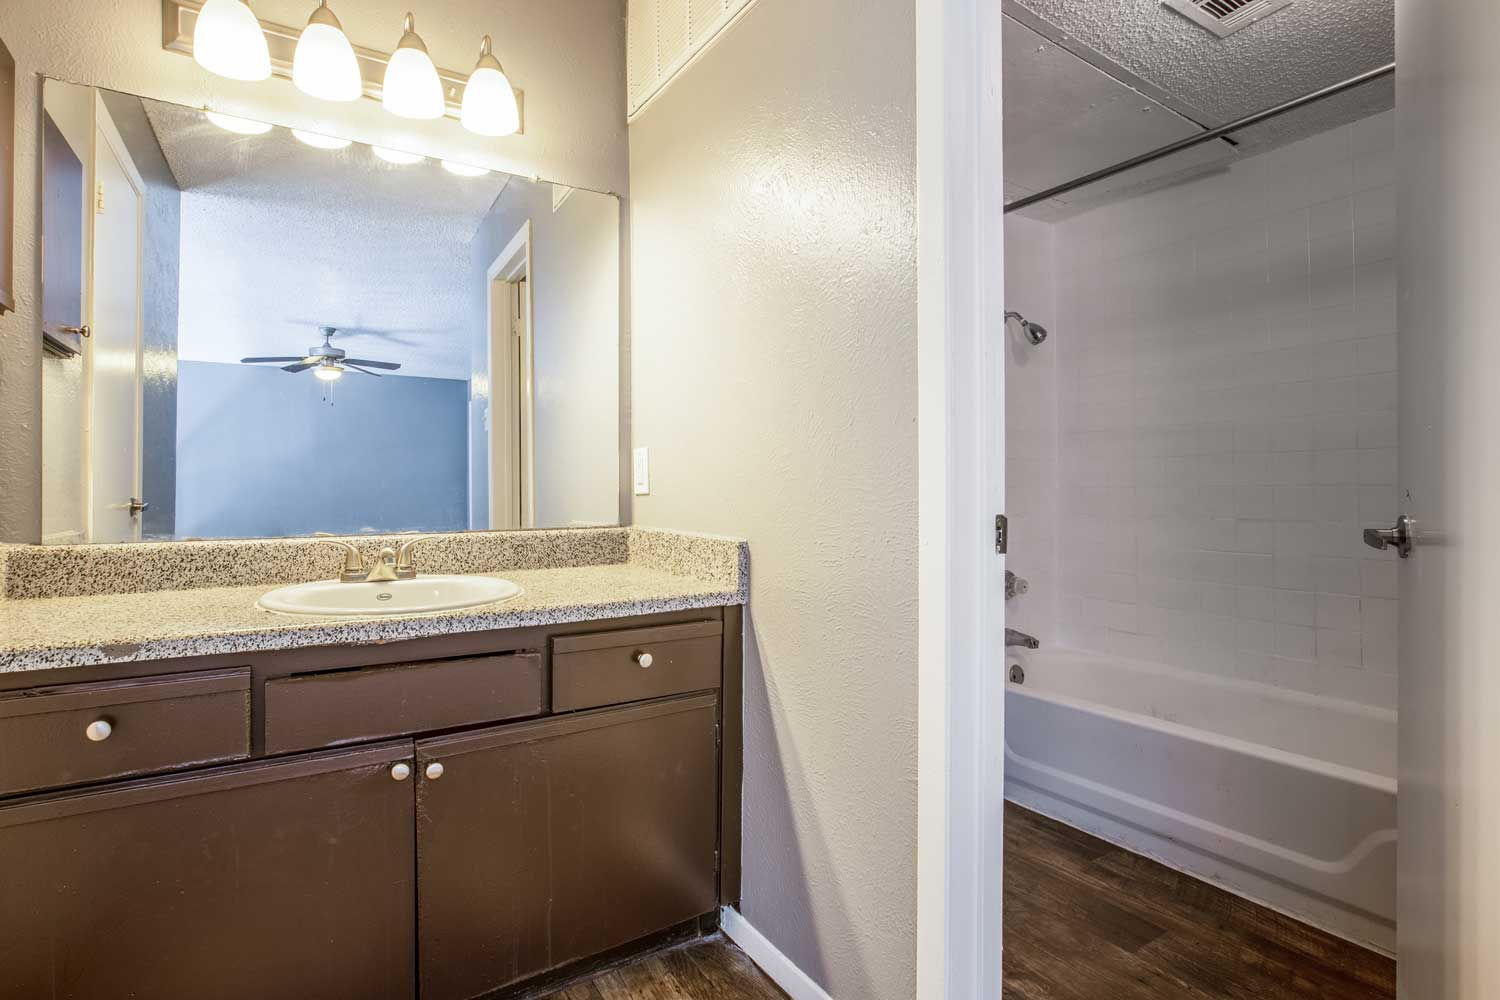 Tub and Shower Room at Cadence Apartments in Dallas, Texas